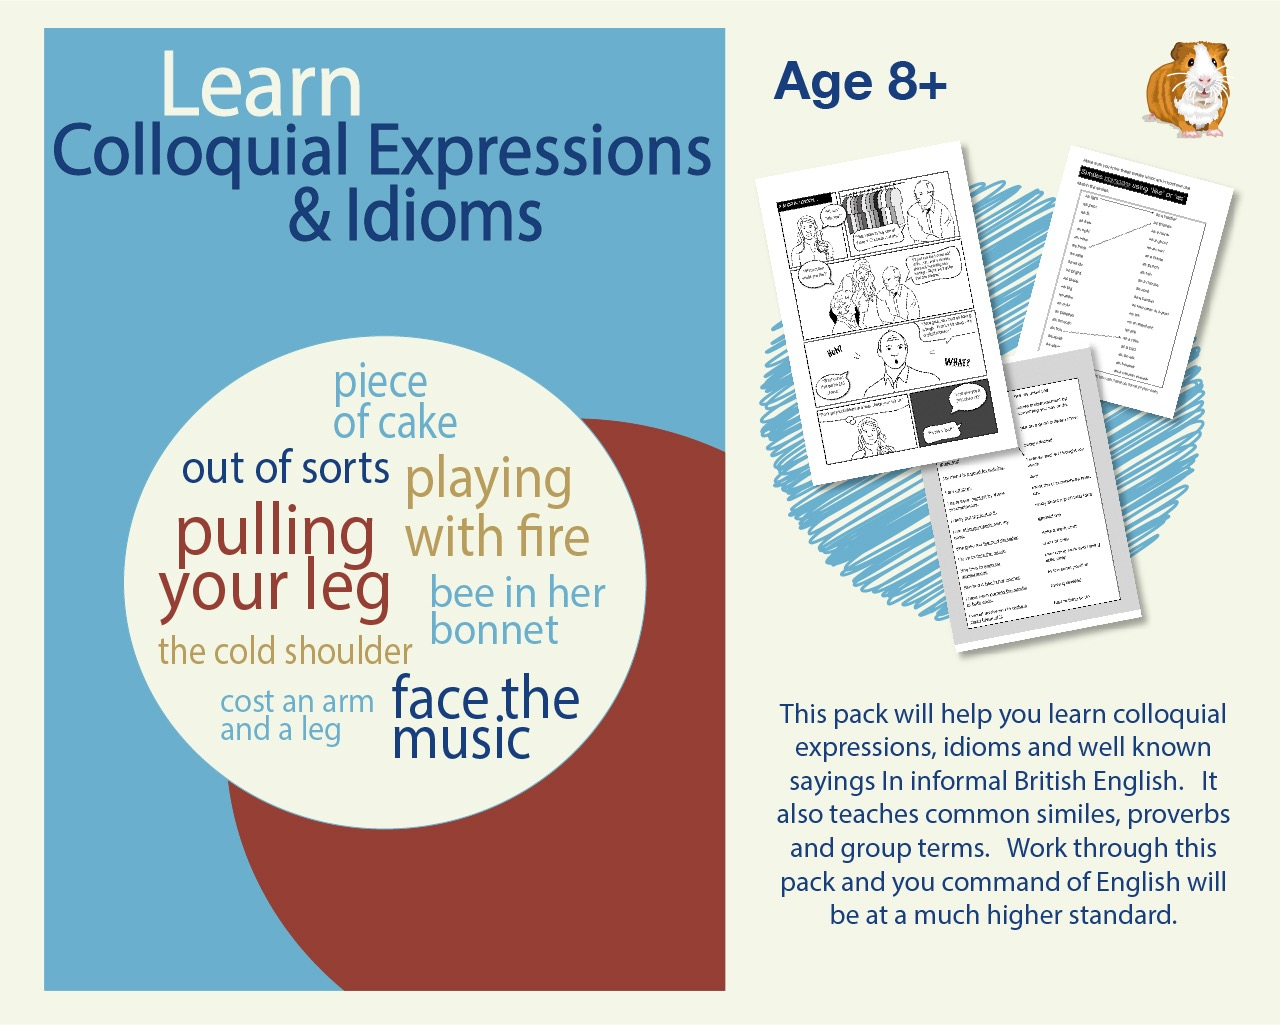 Learn Colloquial Expressions & Idioms In English